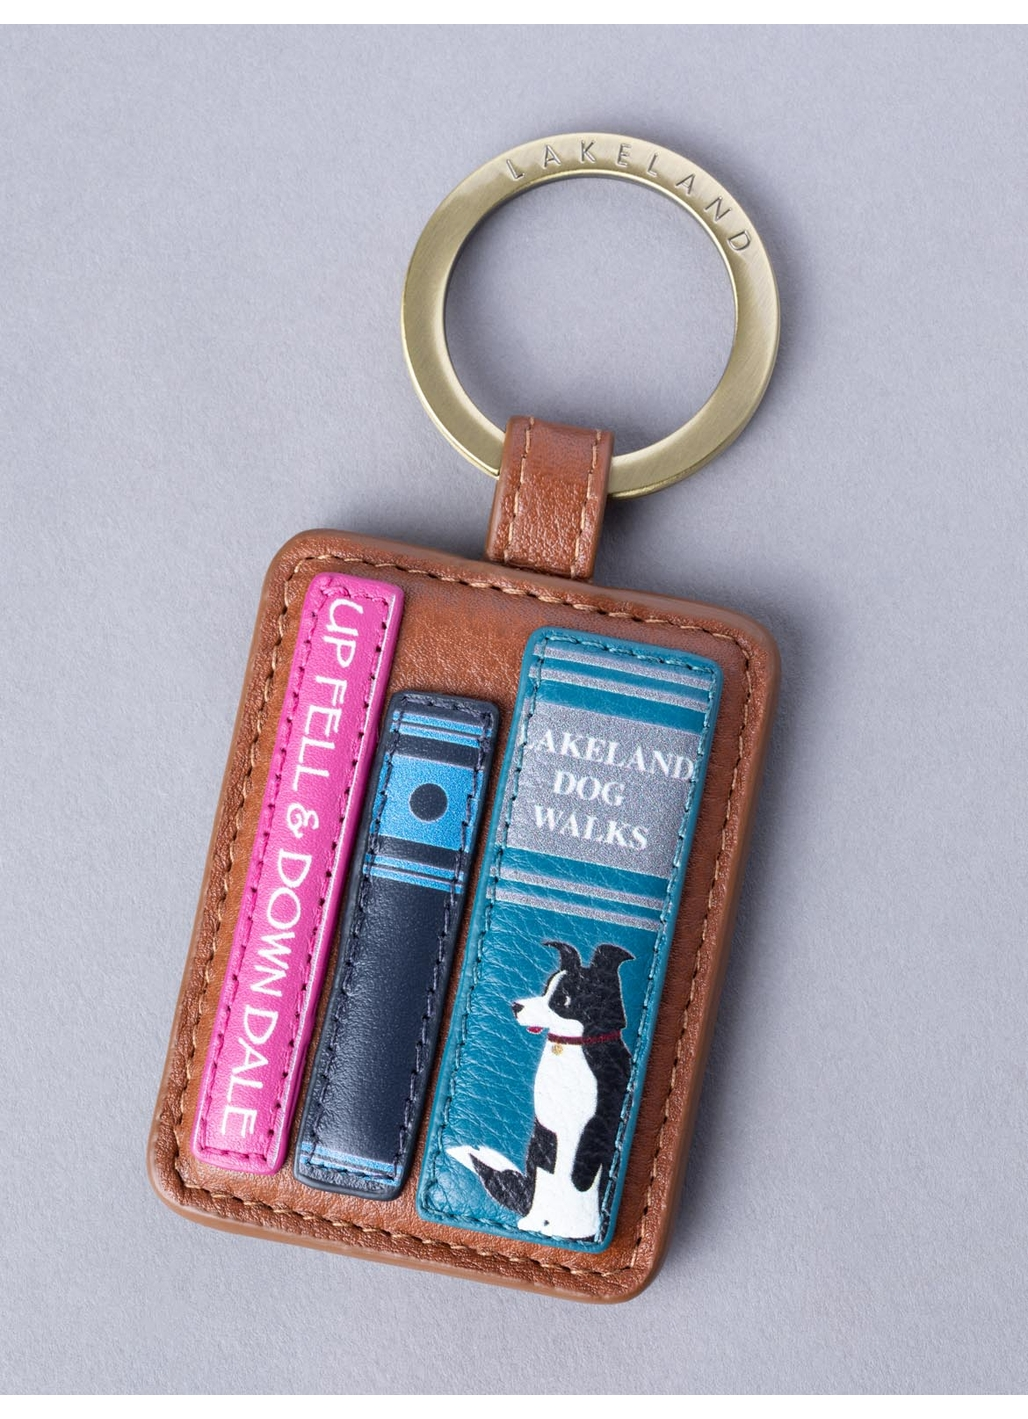 The Lakes Book Leather Keyring in Tan